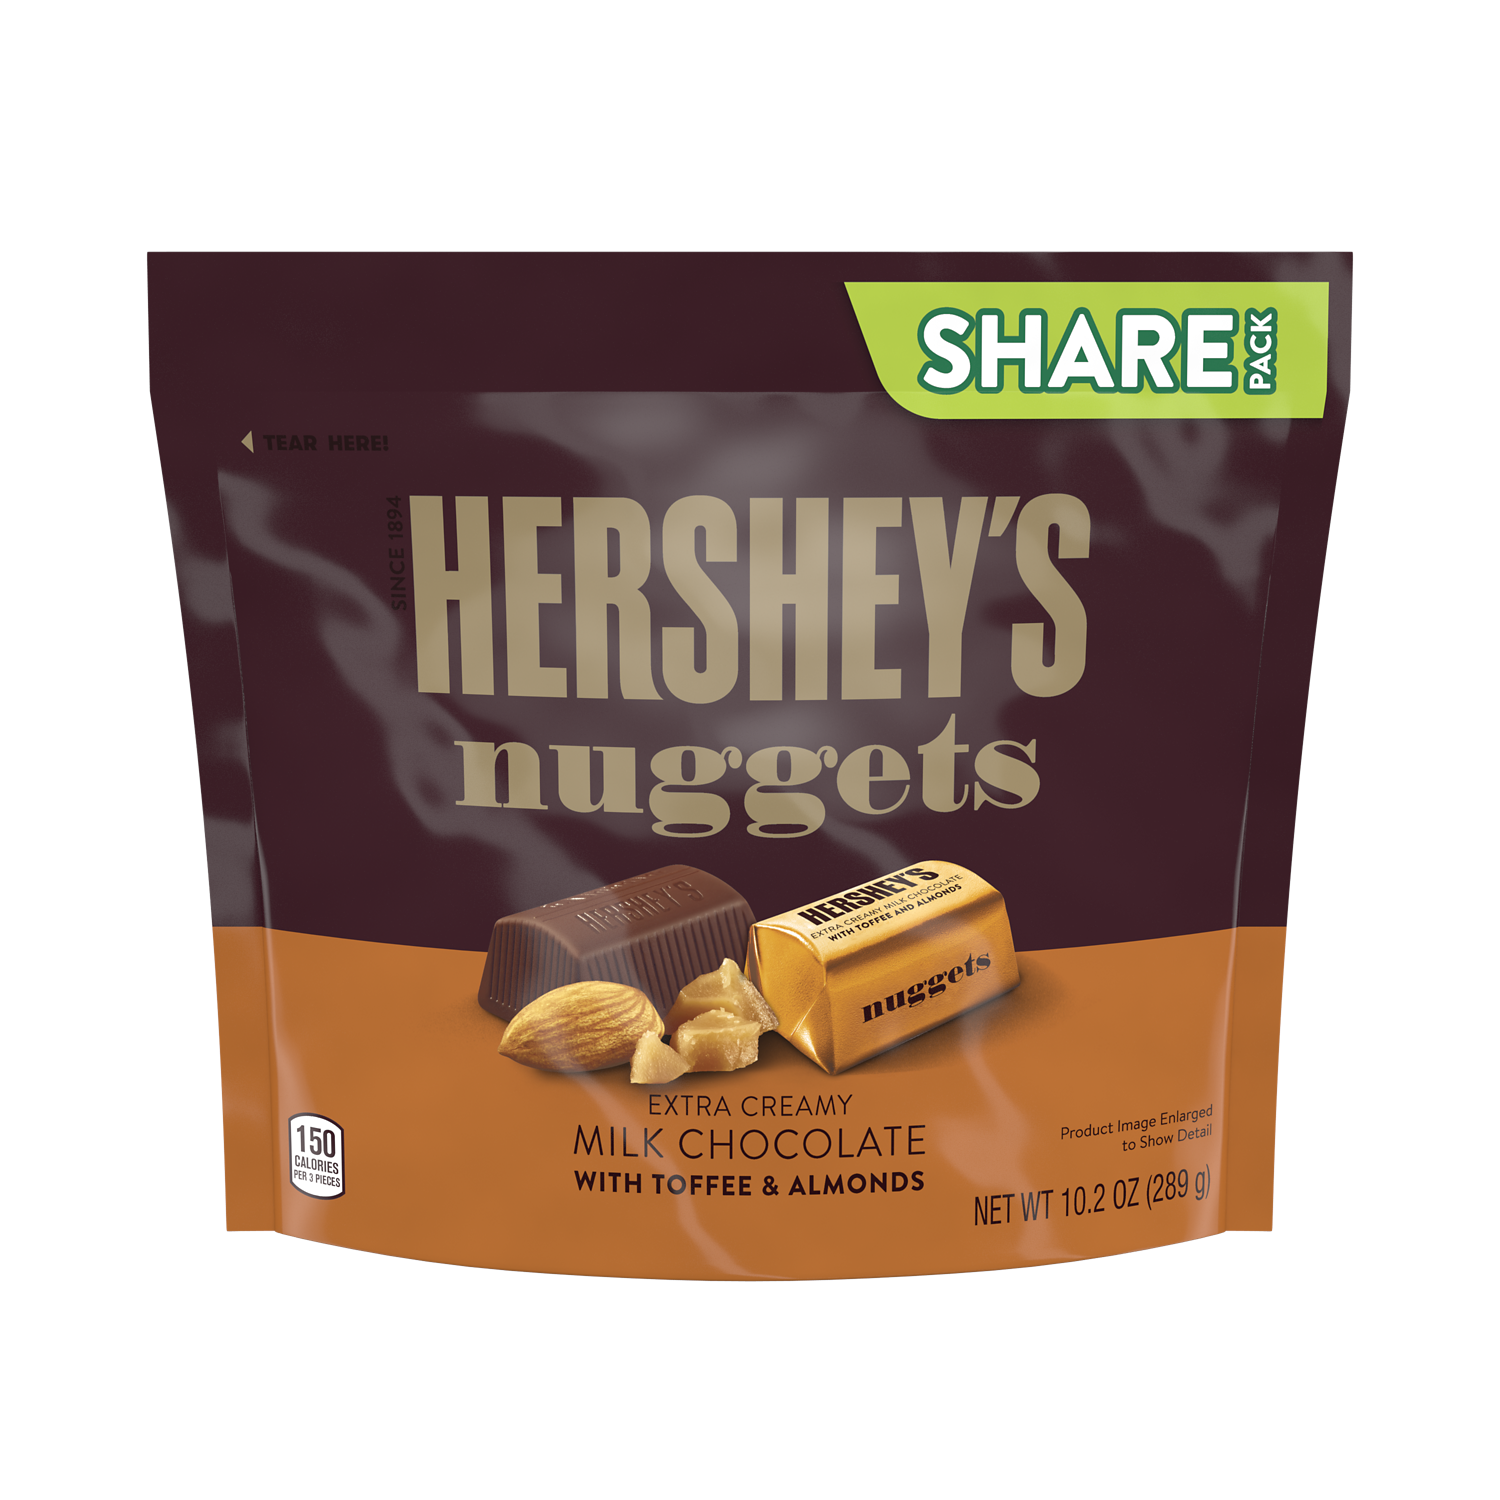 HERSHEY'S NUGGETS Extra Creamy Milk Chocolate with Toffee & Almonds Candy, 10.2 oz pack - Front of Package